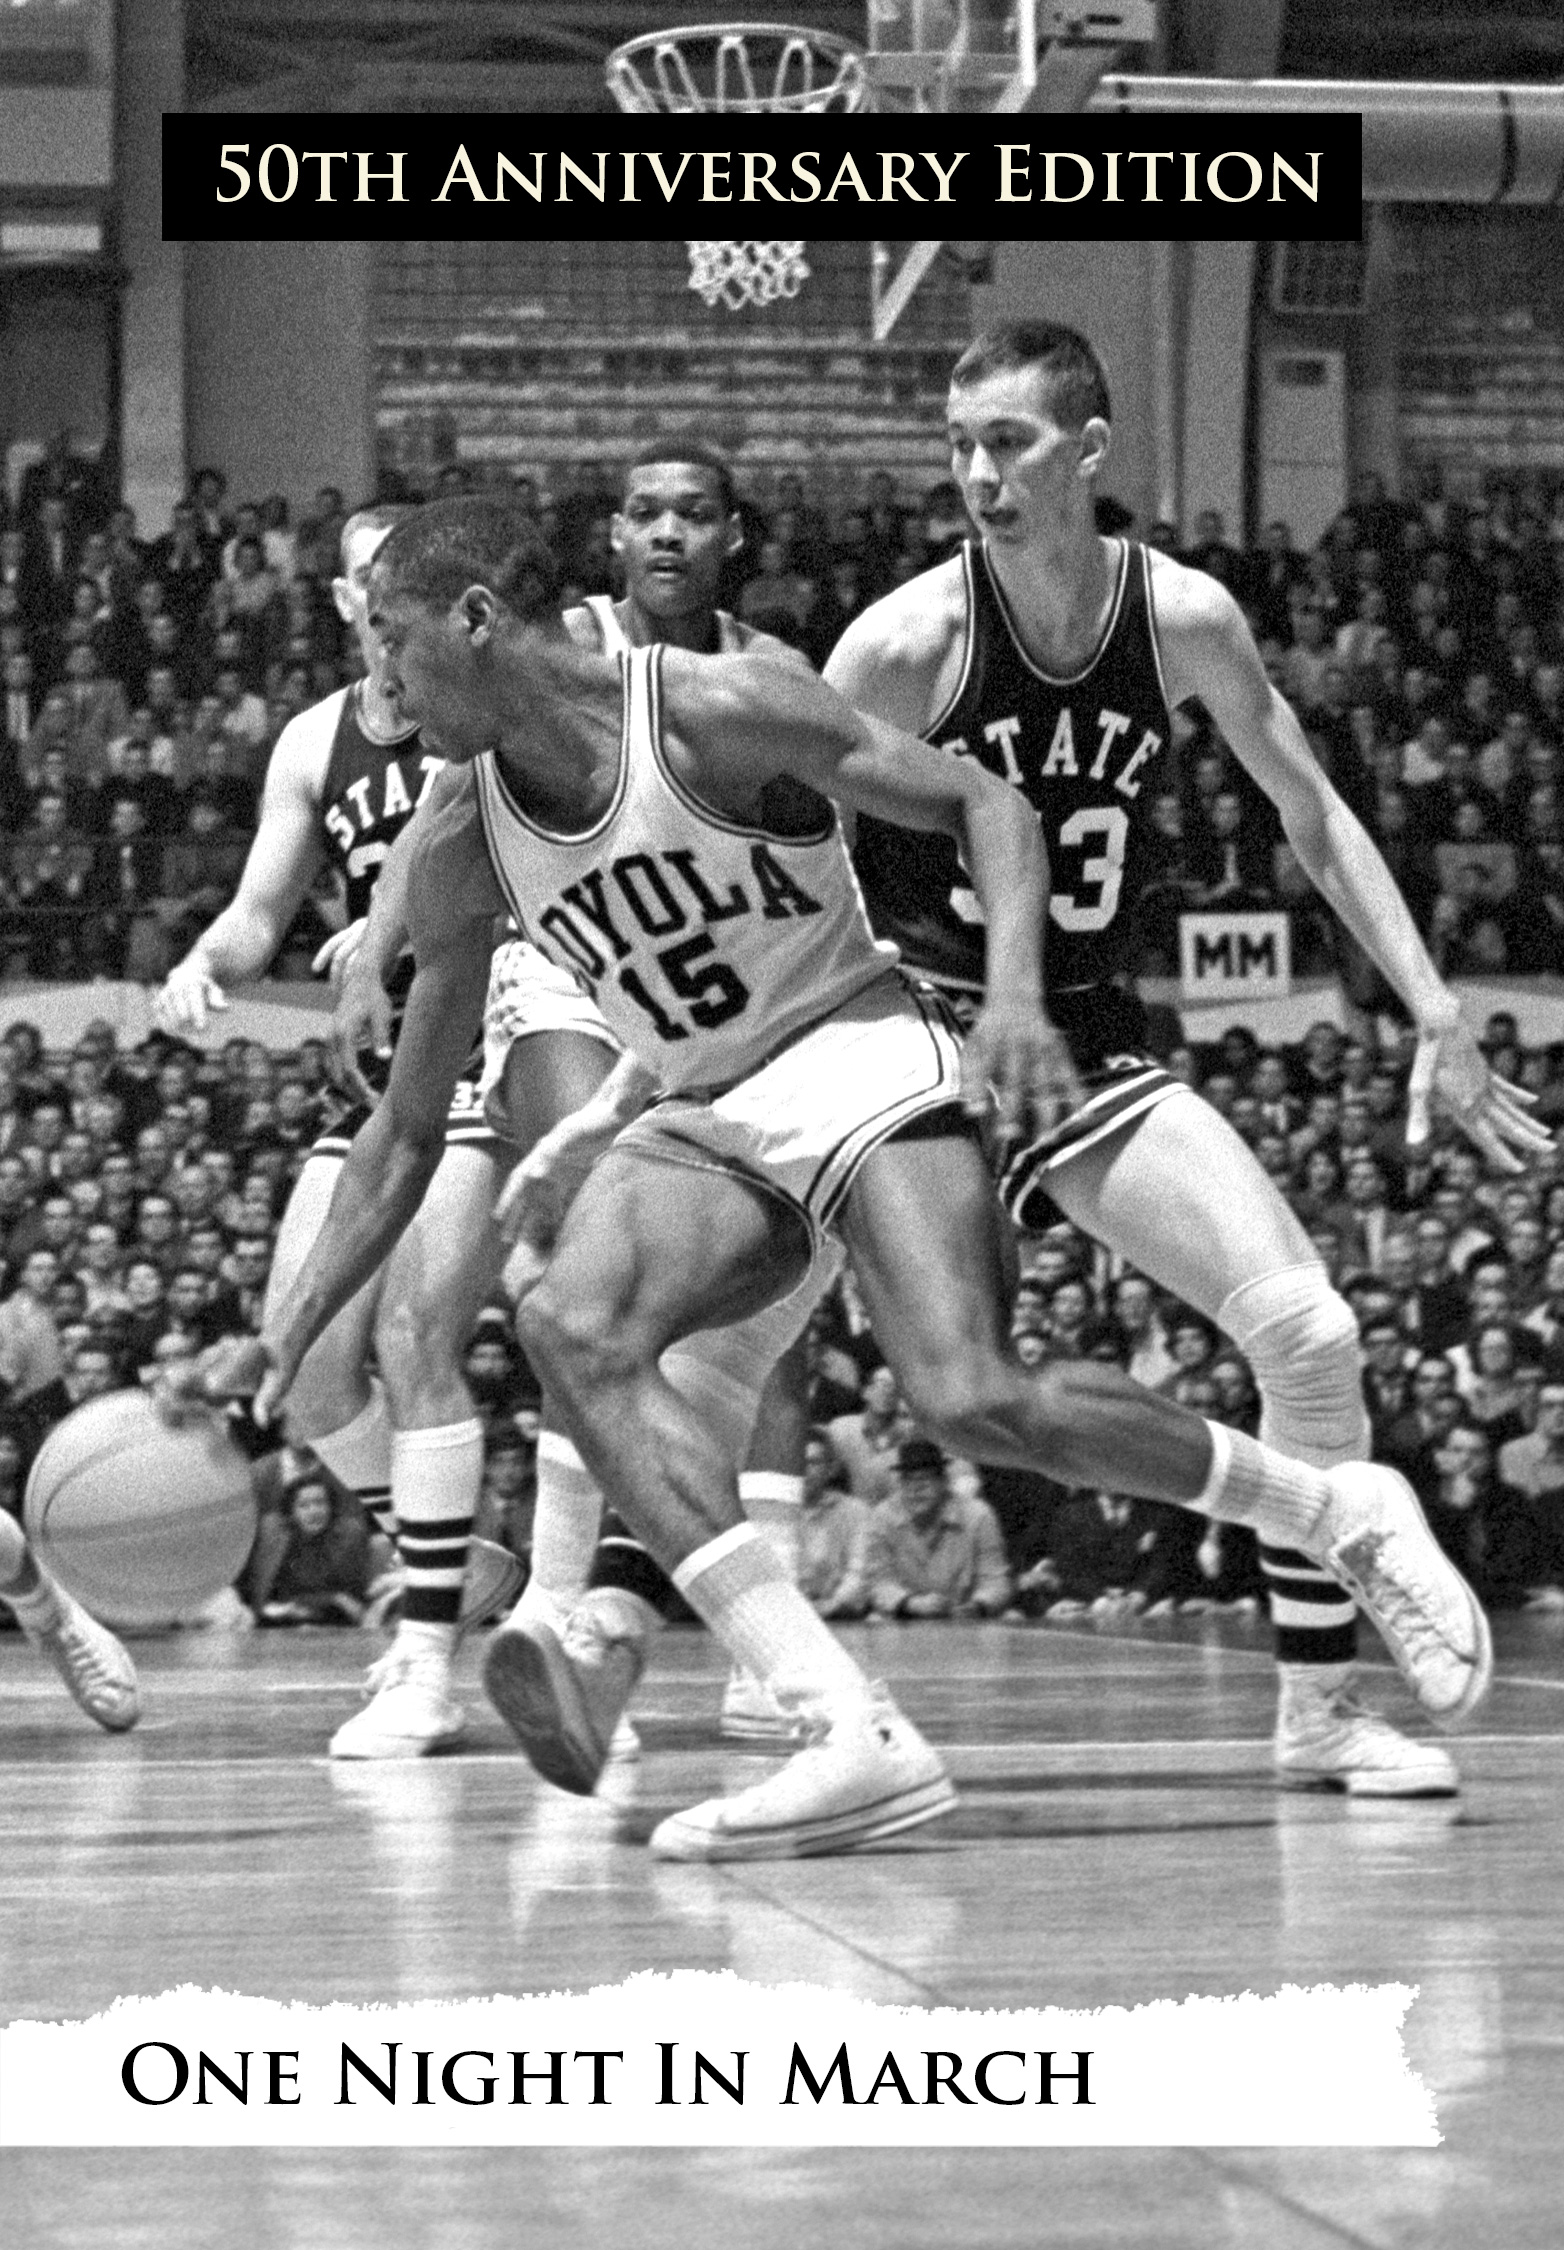 One Night in March - Mississippi State in the 1963 NCAA